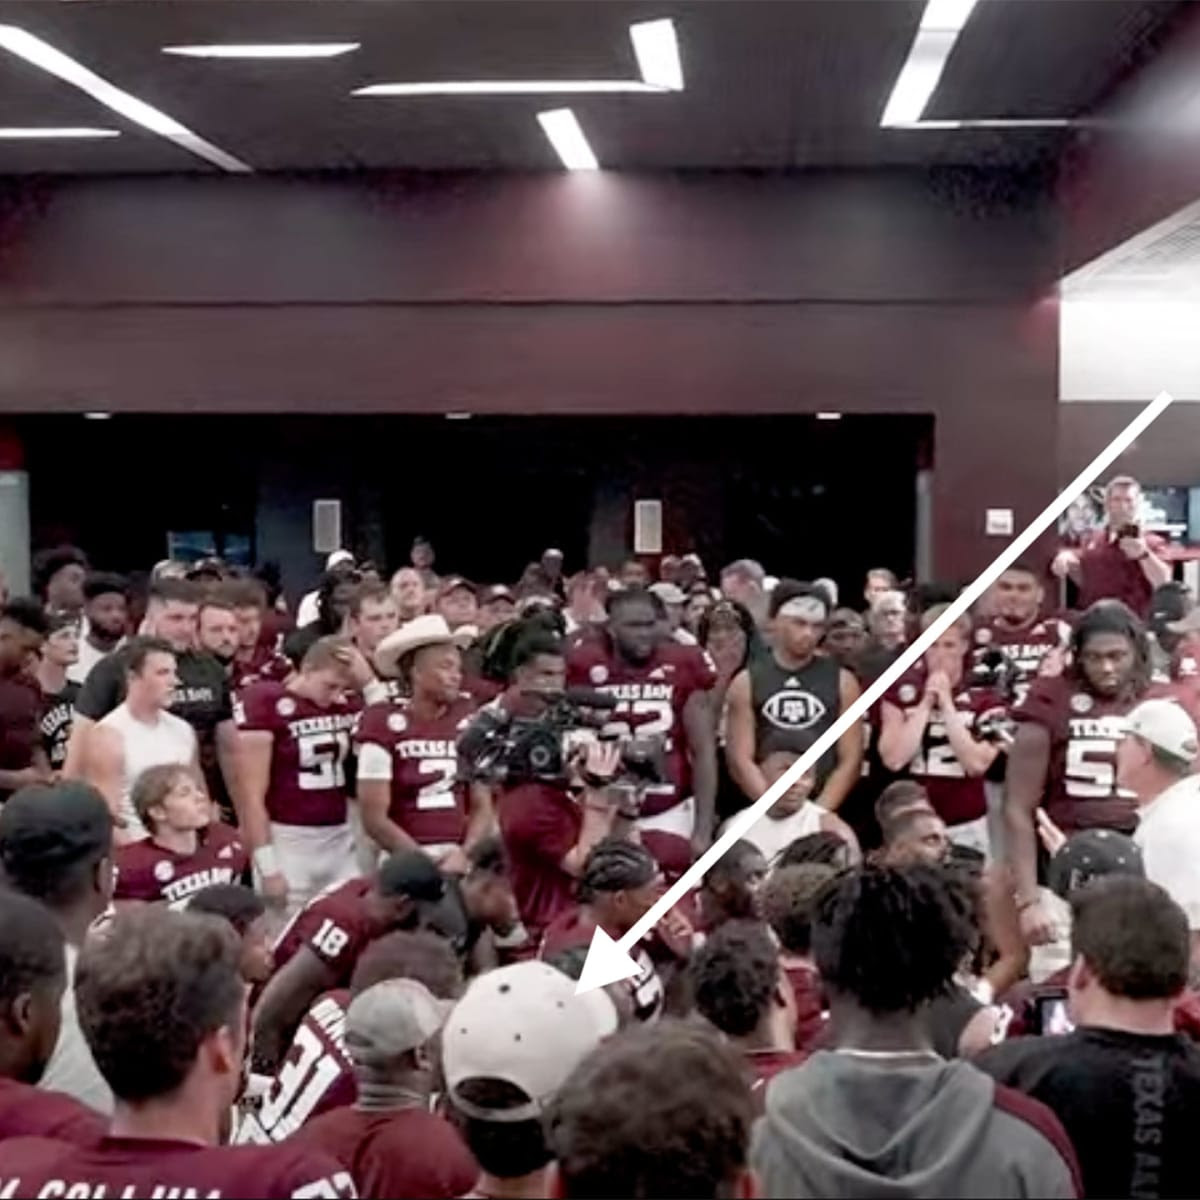 How a 22-Year-Old UTSA Student Faked His Way Into Texas A&M's Post-Alabama Locker Room